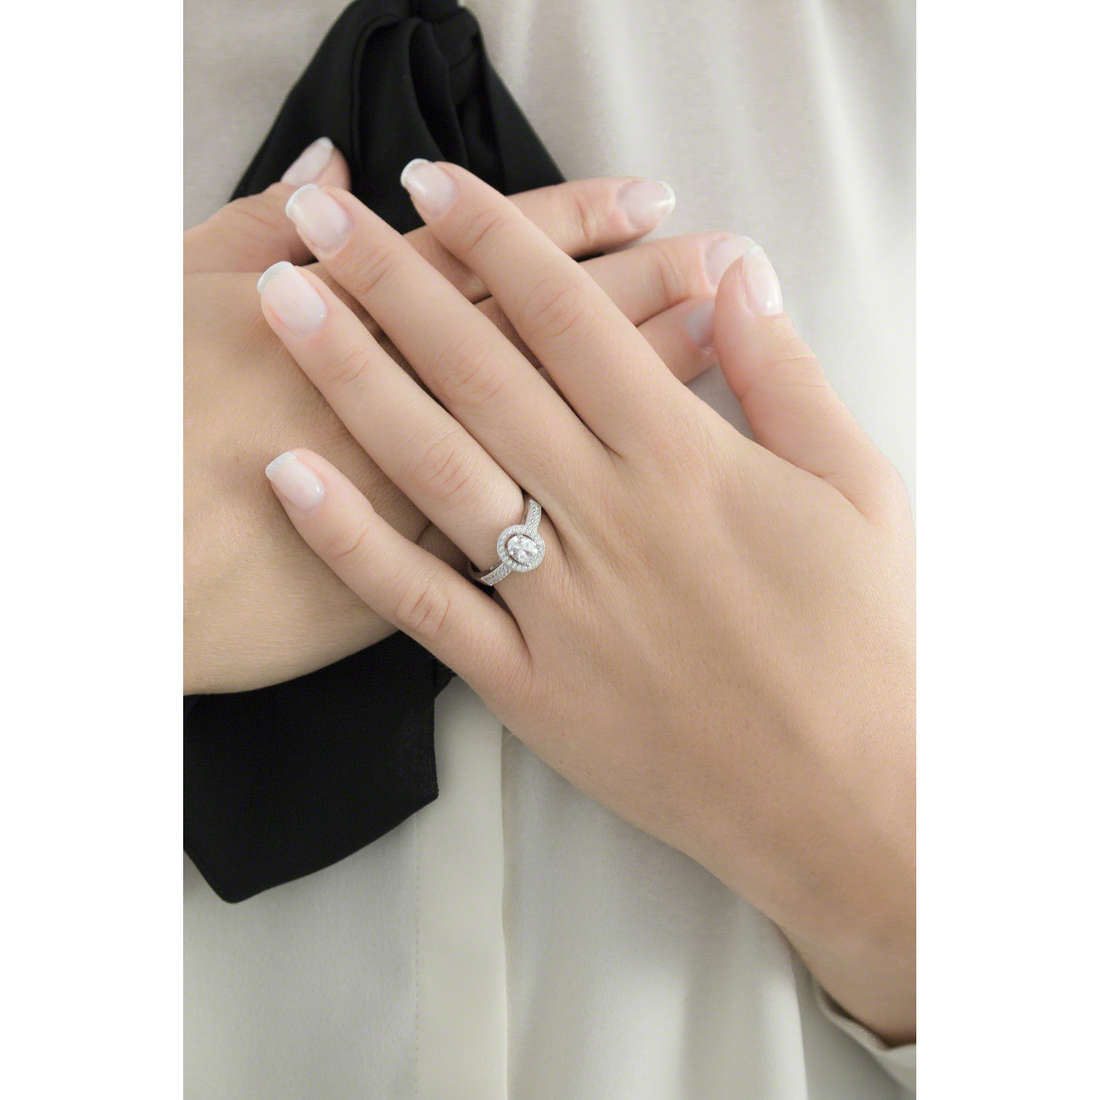 Ambrosia rings woman AAA 019 S indosso